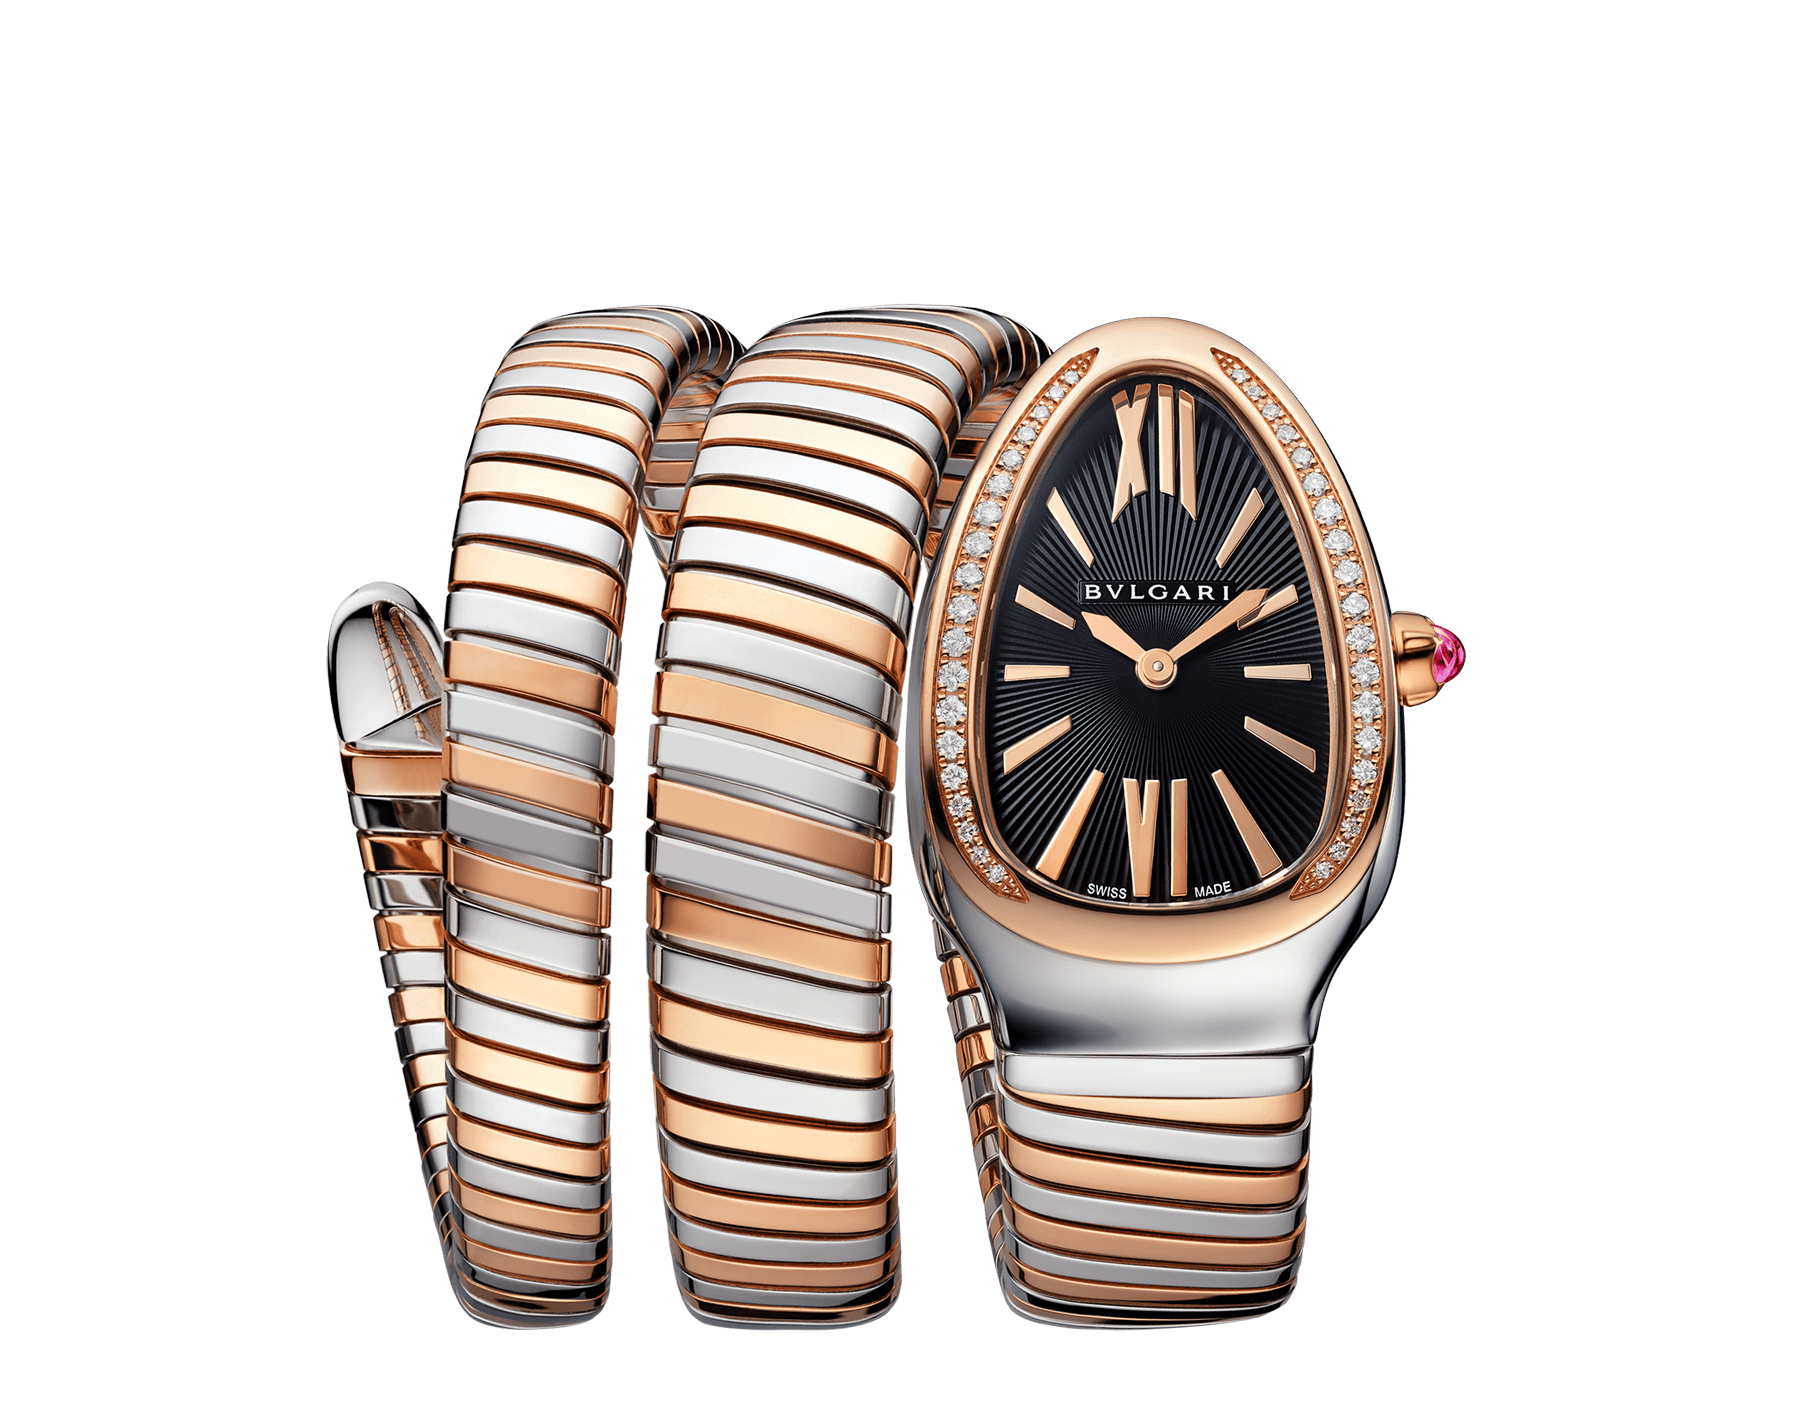 Serpenti Tubogas double spiral watch with stainless steel case, 18 kt rose gold bezel set with brilliant cut diamonds, black opaline dial, 18 kt rose gold and stainless steel bracelet. 102099 image 1